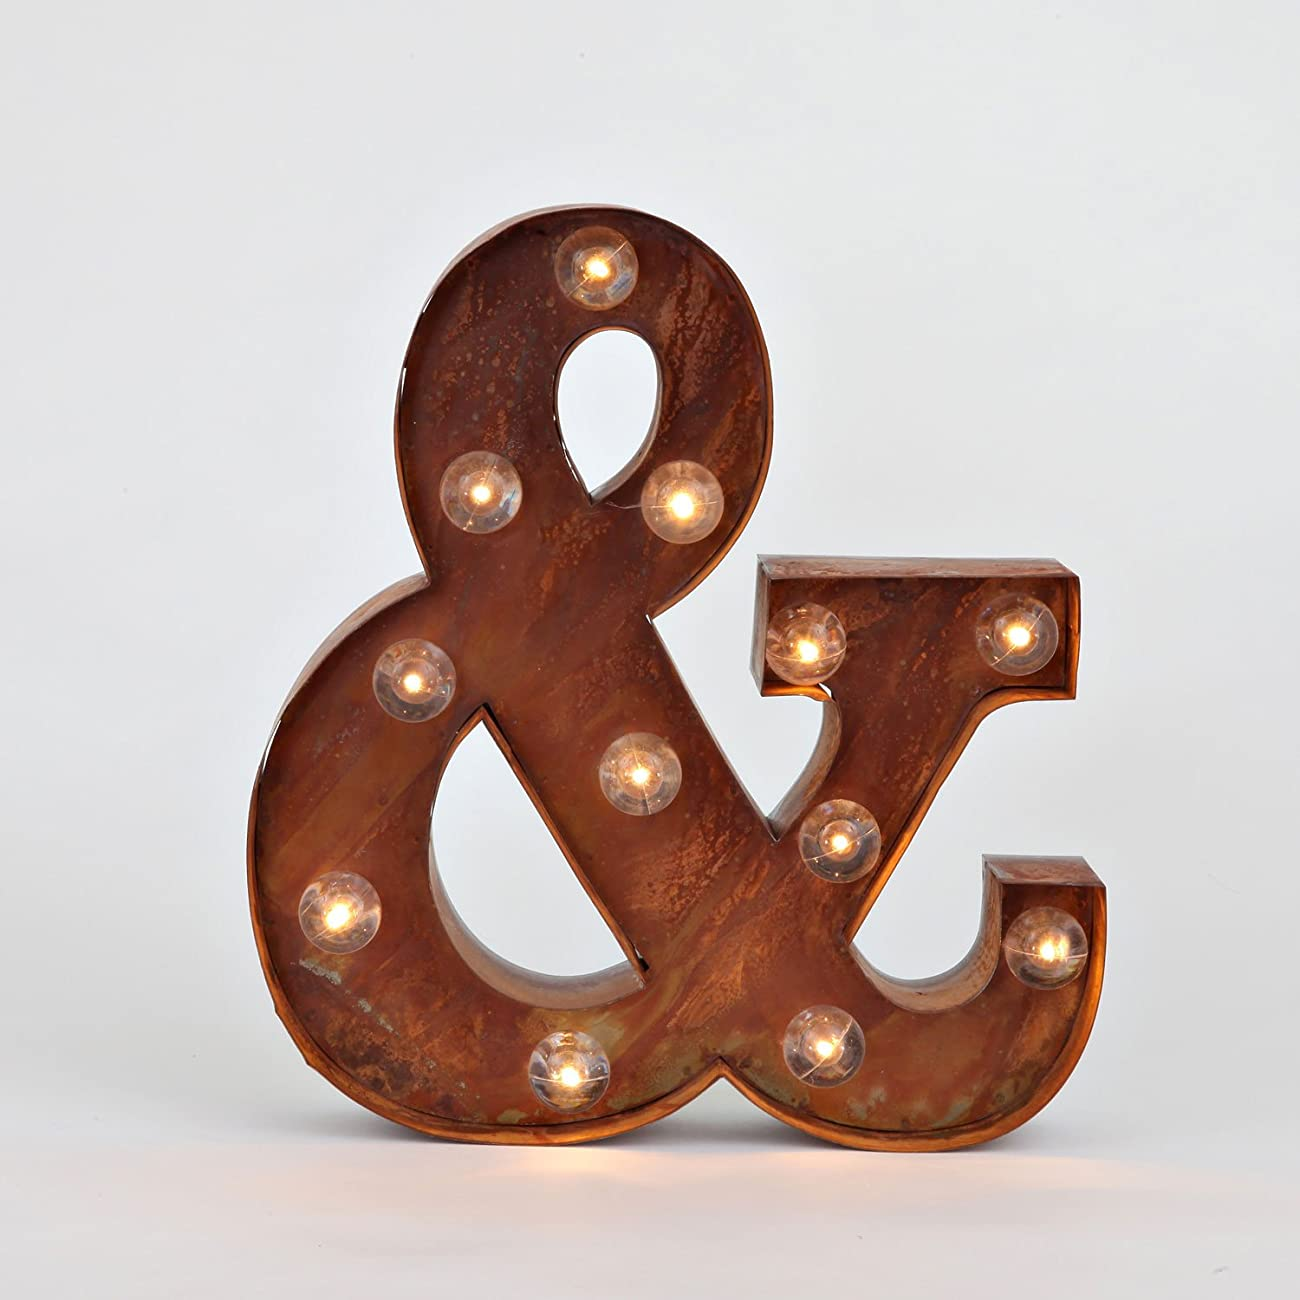 Vintage Lighted Ampersand Symbol Battery Marquee Light with 12 Warm White LEDs, Rustic Metal, Timer Option Available 4